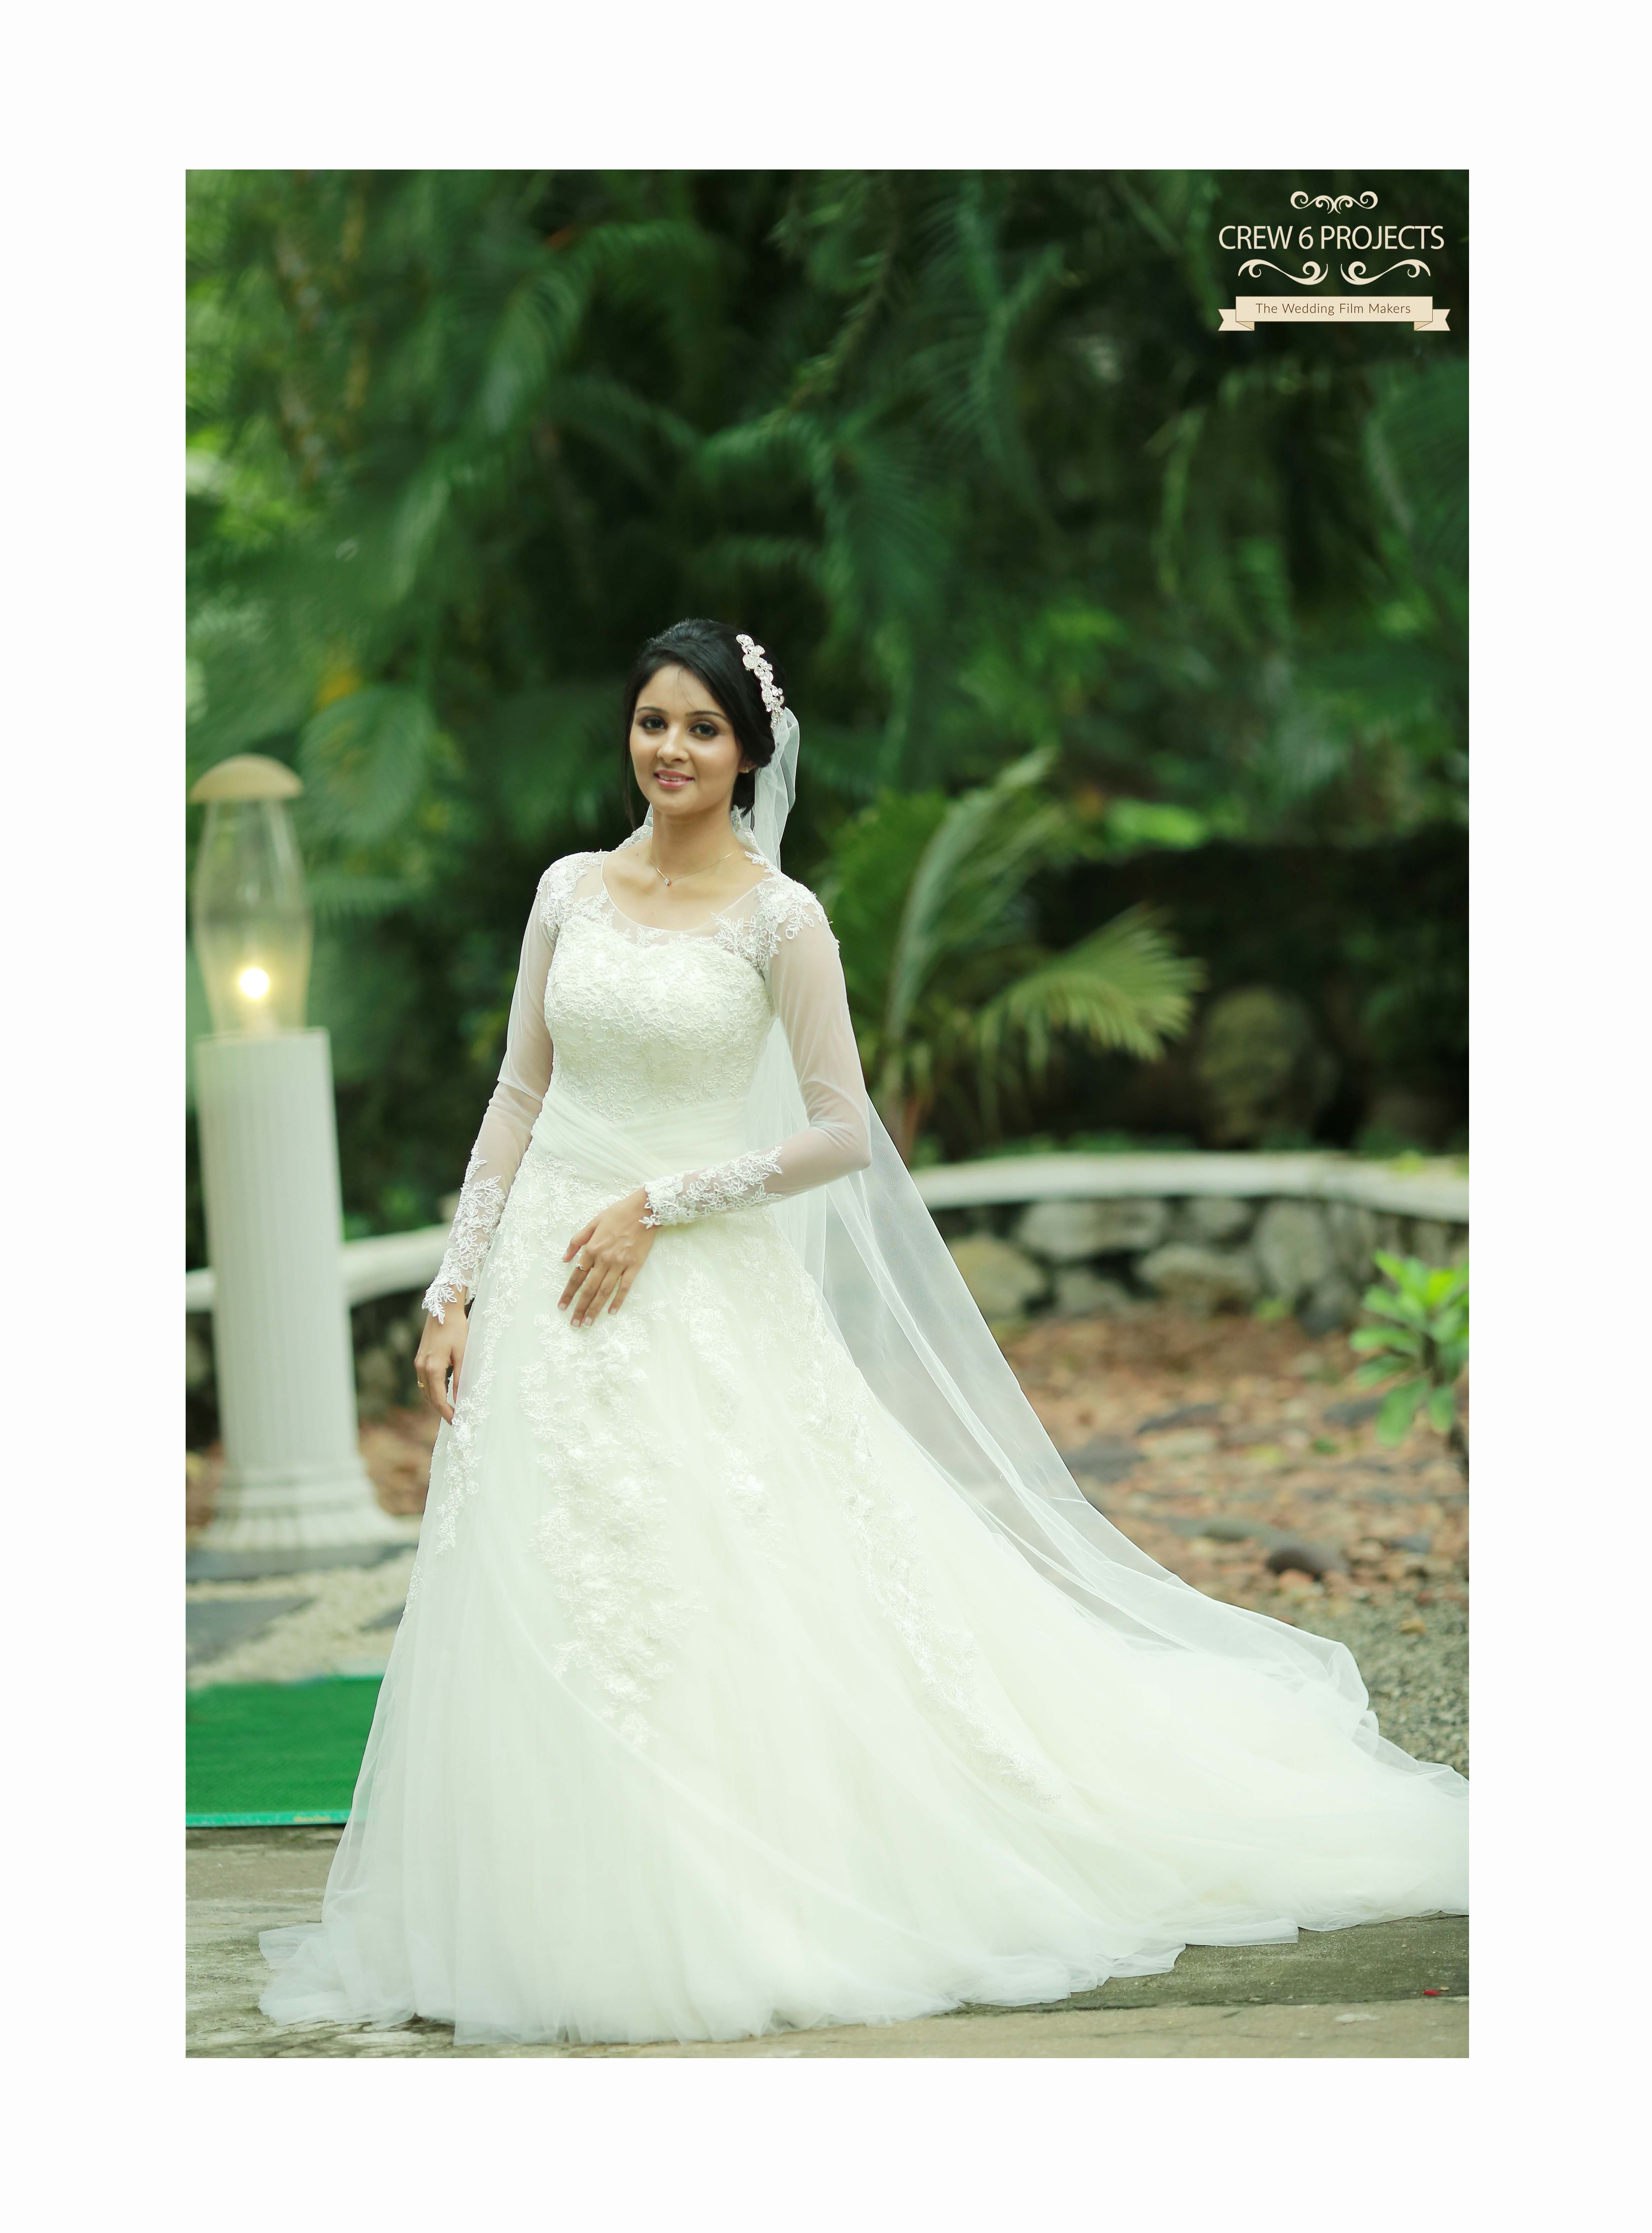 Kerala Christian Bride. Super Wedding Gown